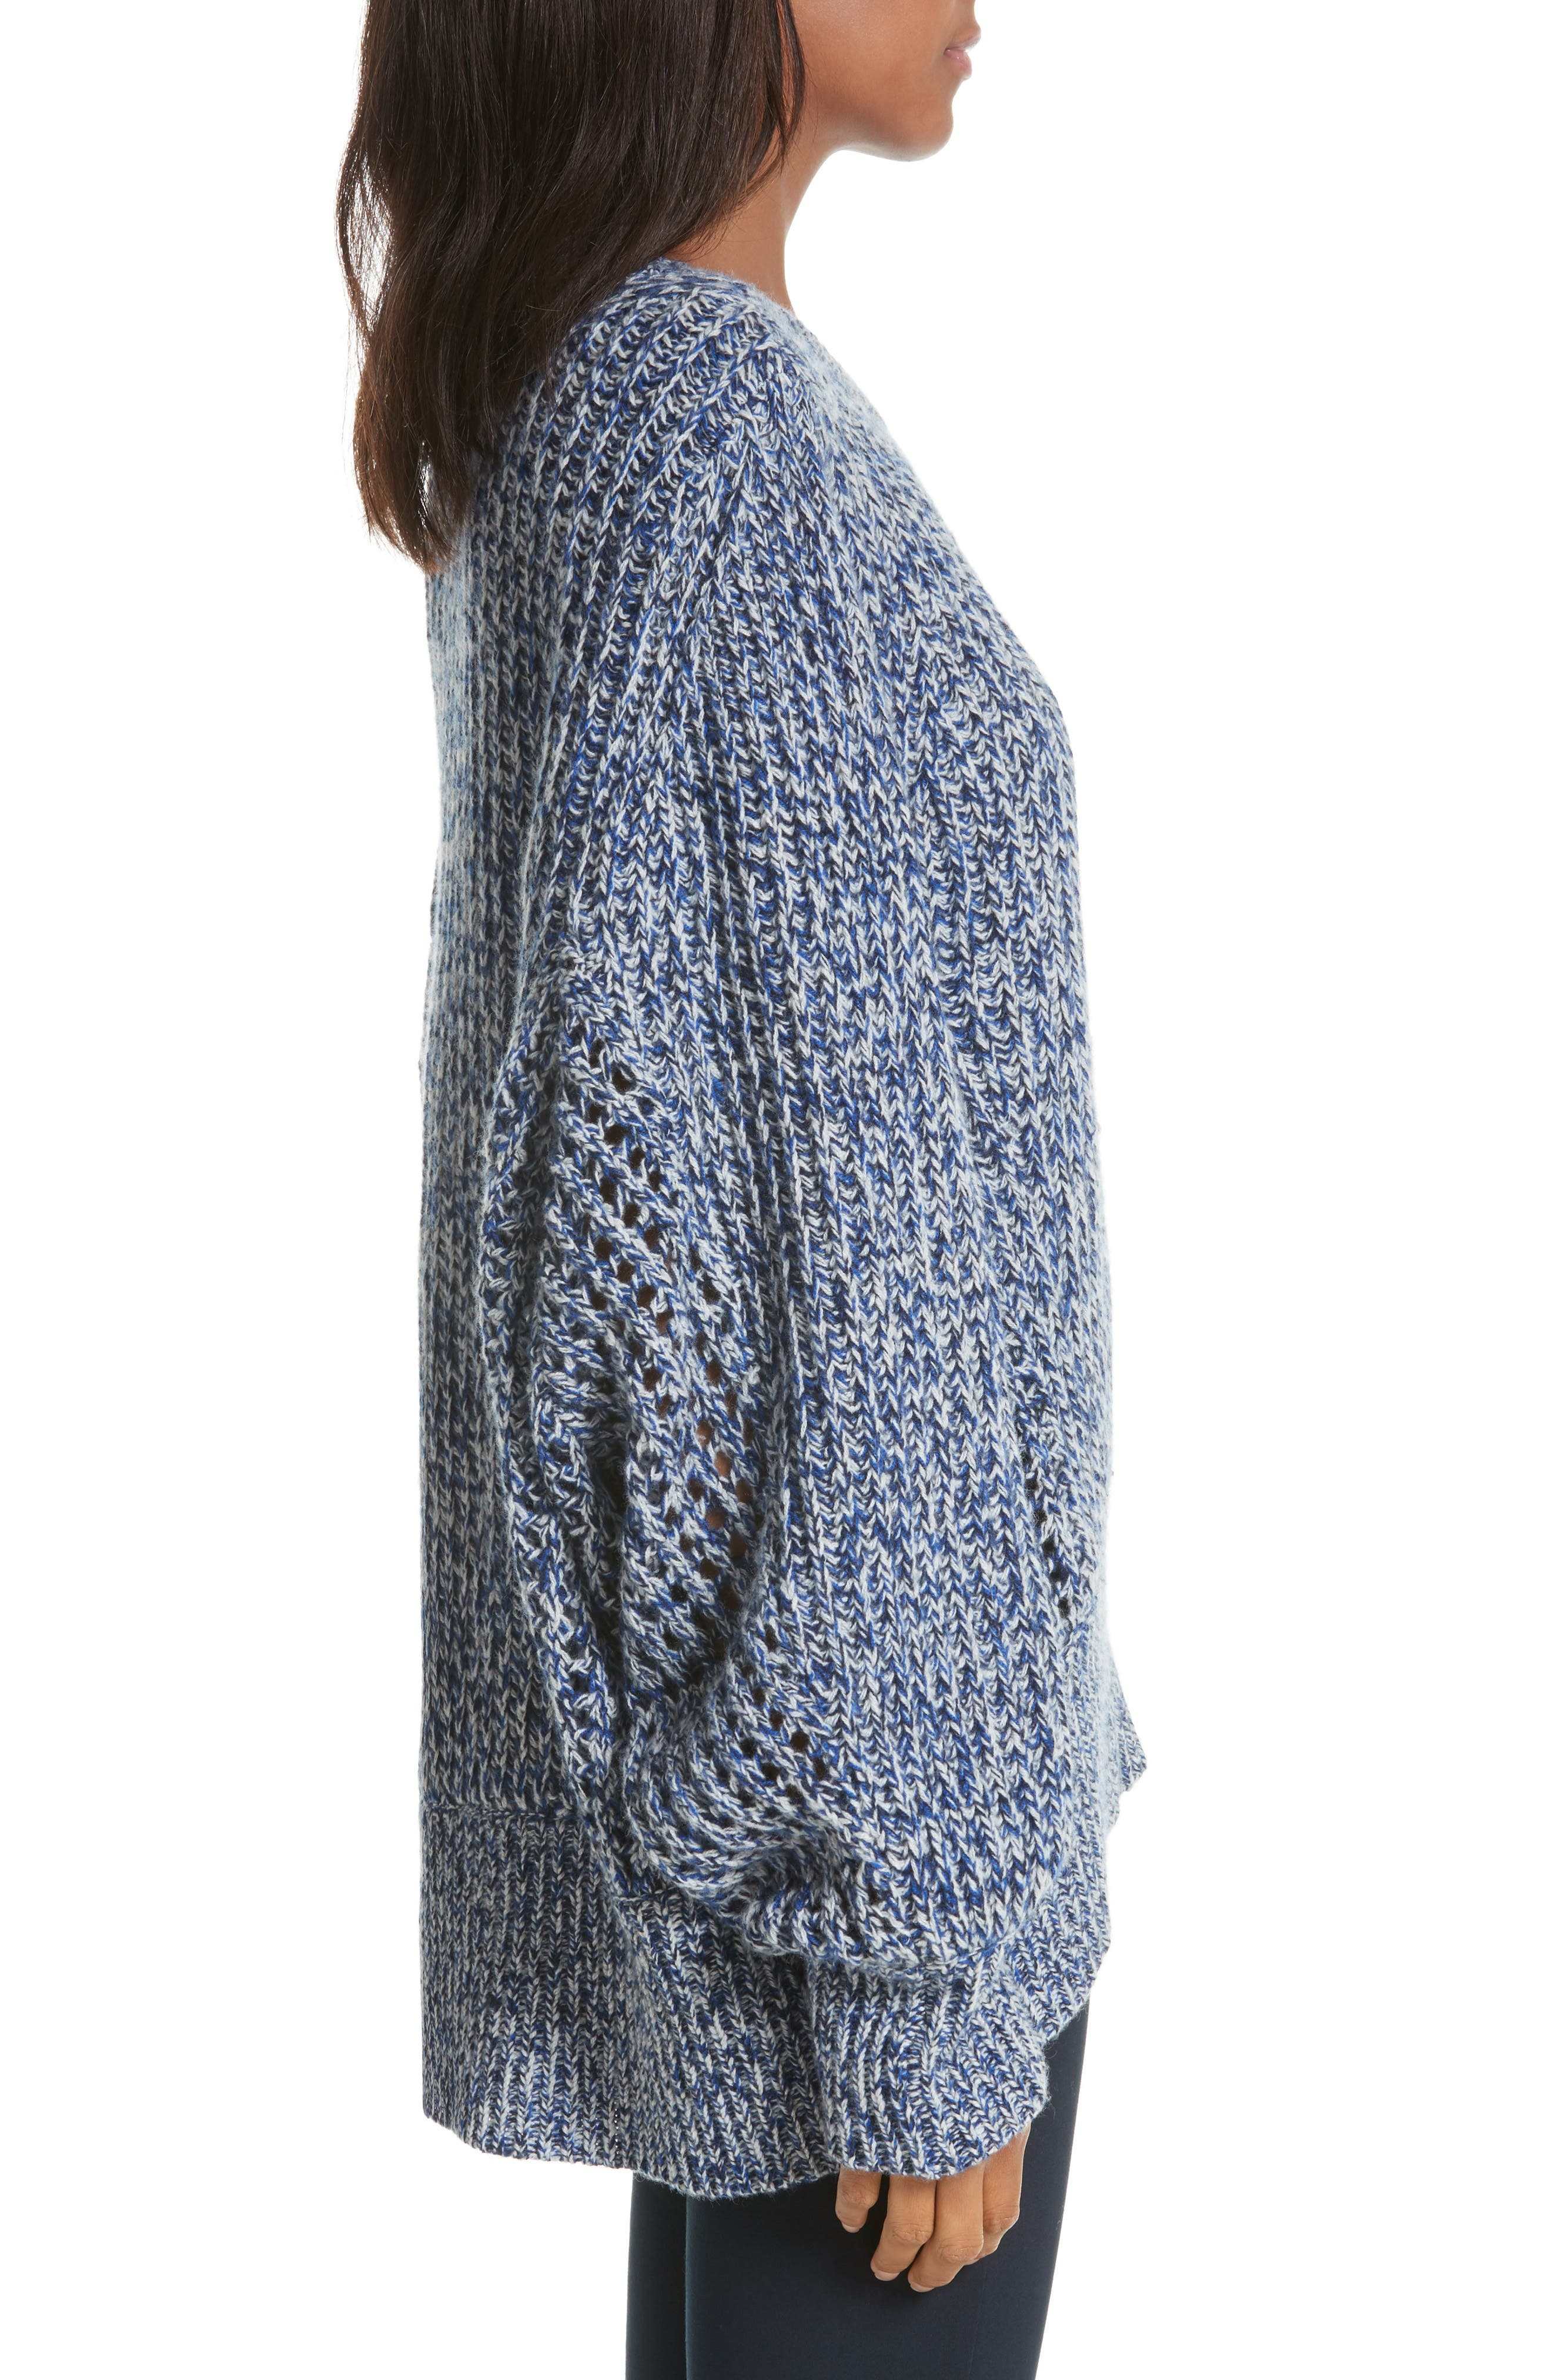 Athena Cashmere Pullover,                             Alternate thumbnail 3, color,                             403